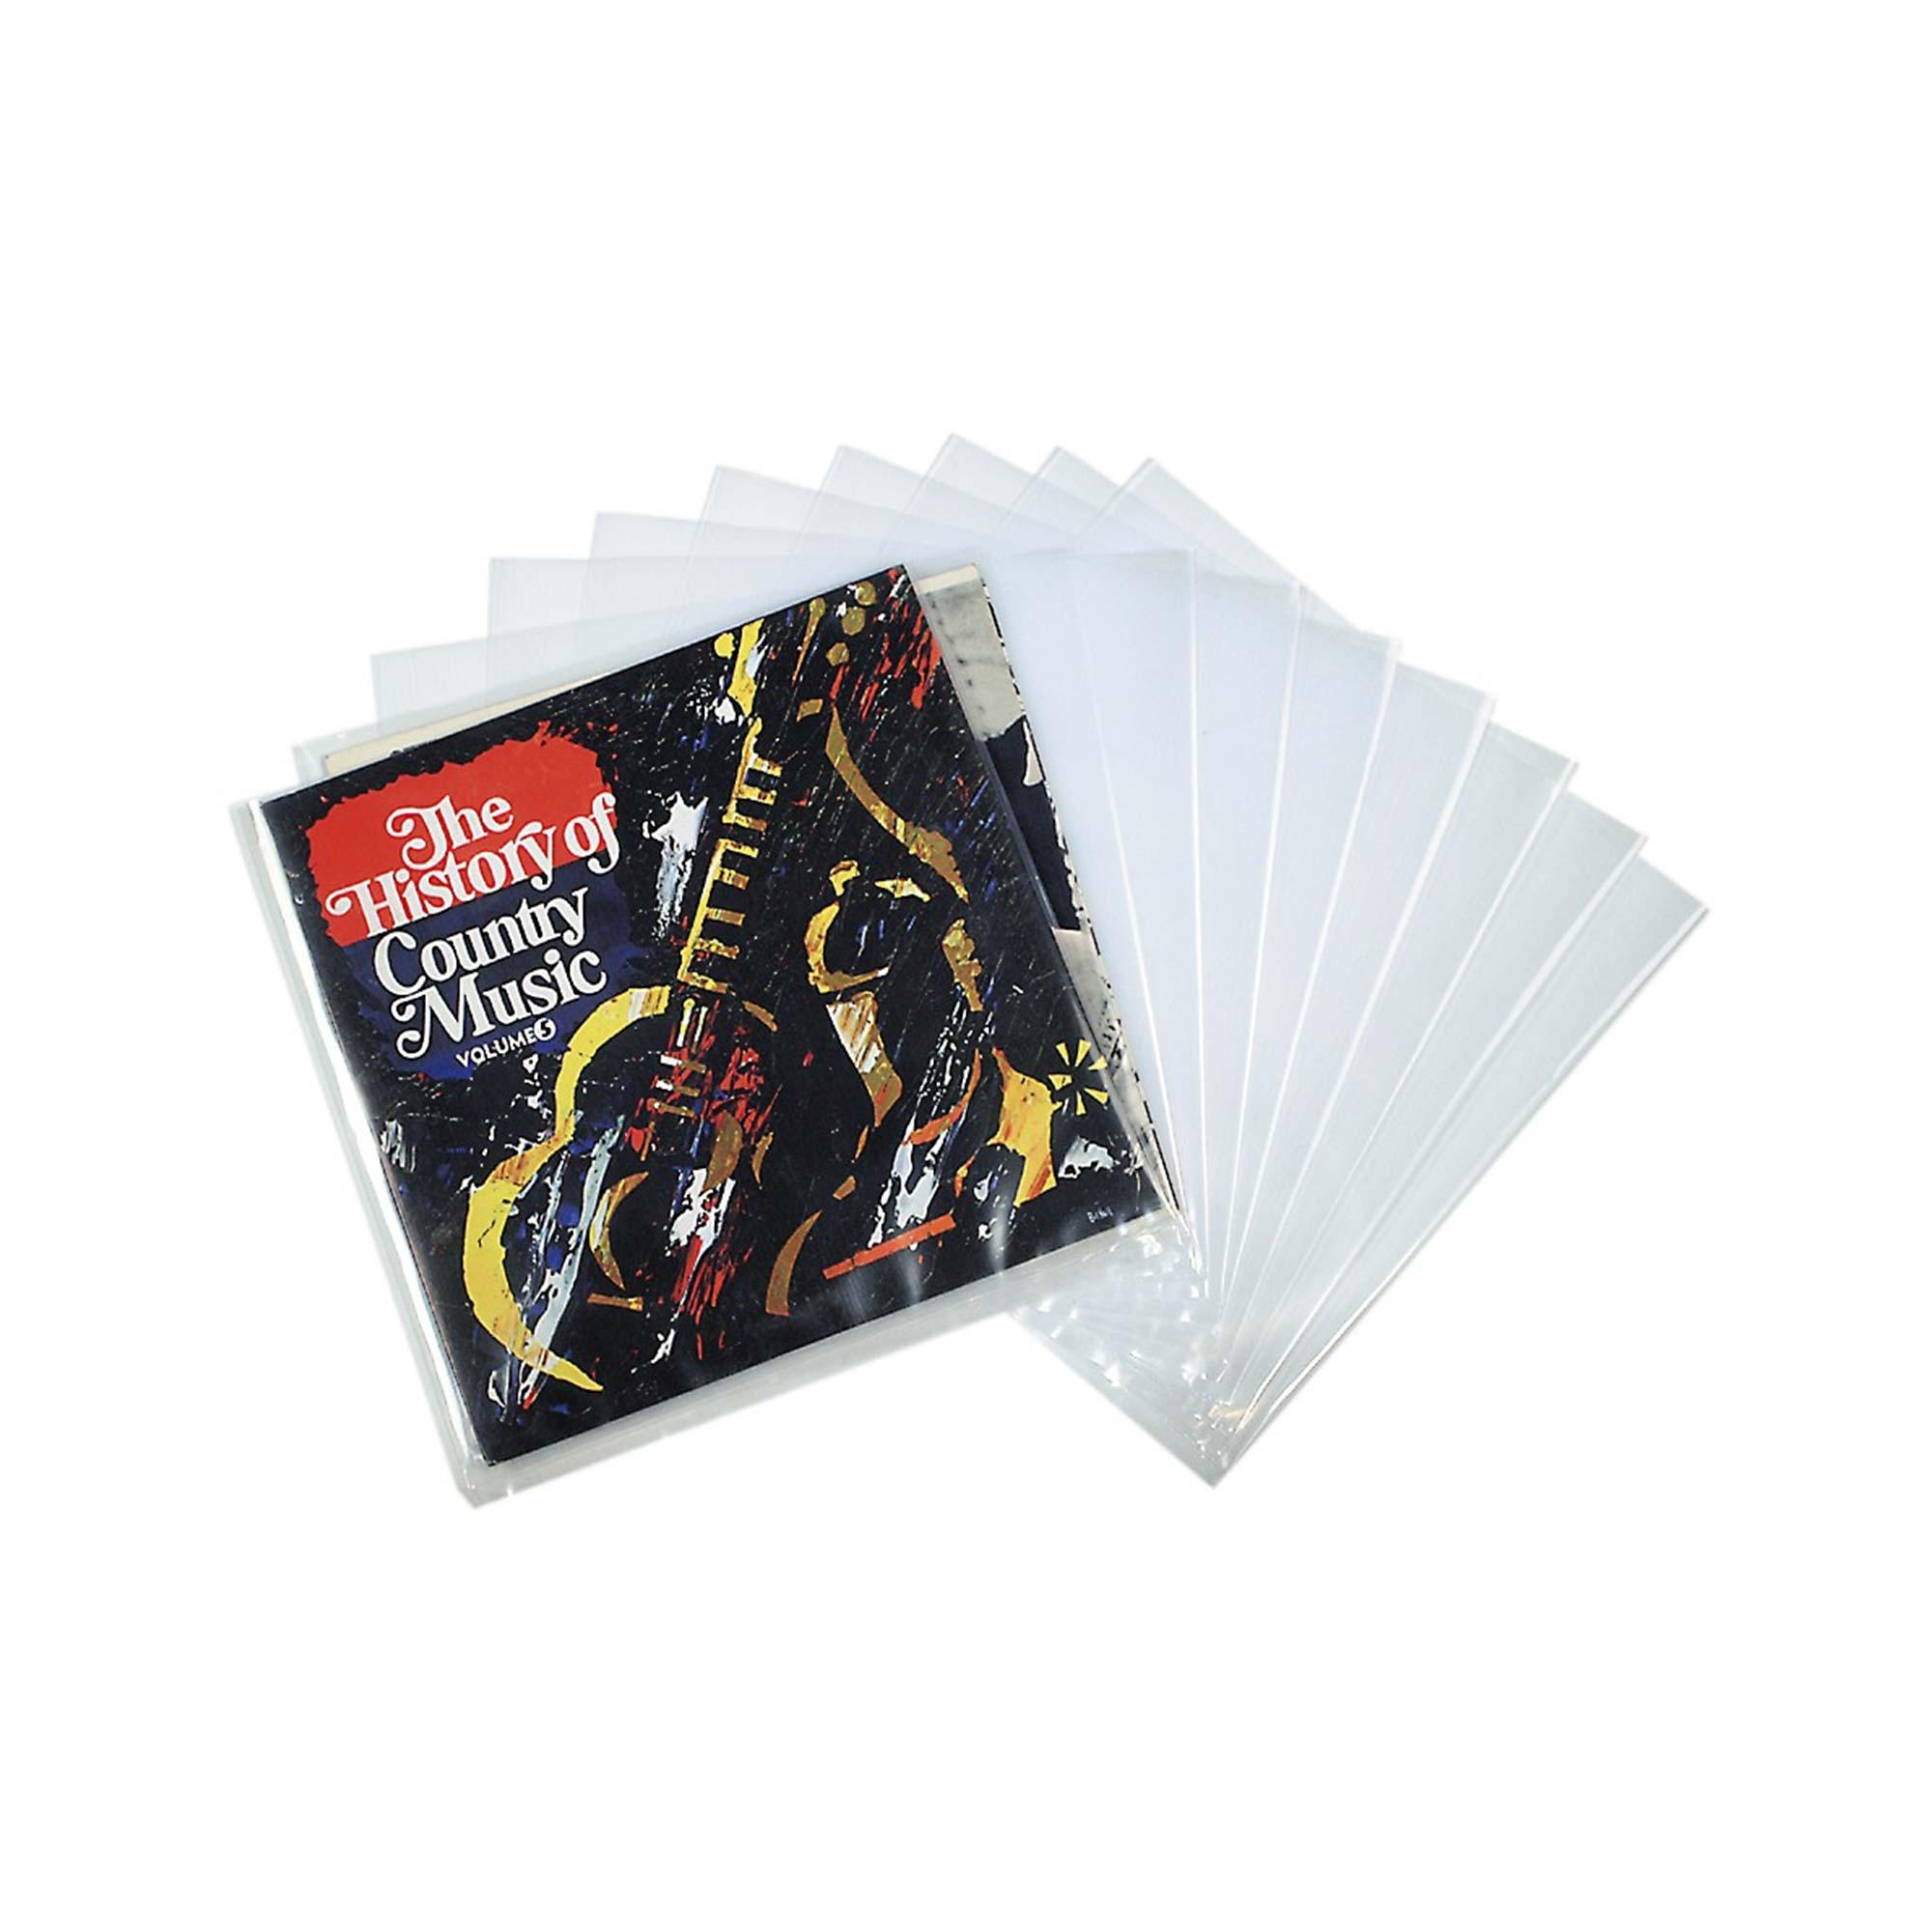 Clear Opp Lp Record Sleeve For 12 Quot Vinyl Disc Amp Covers